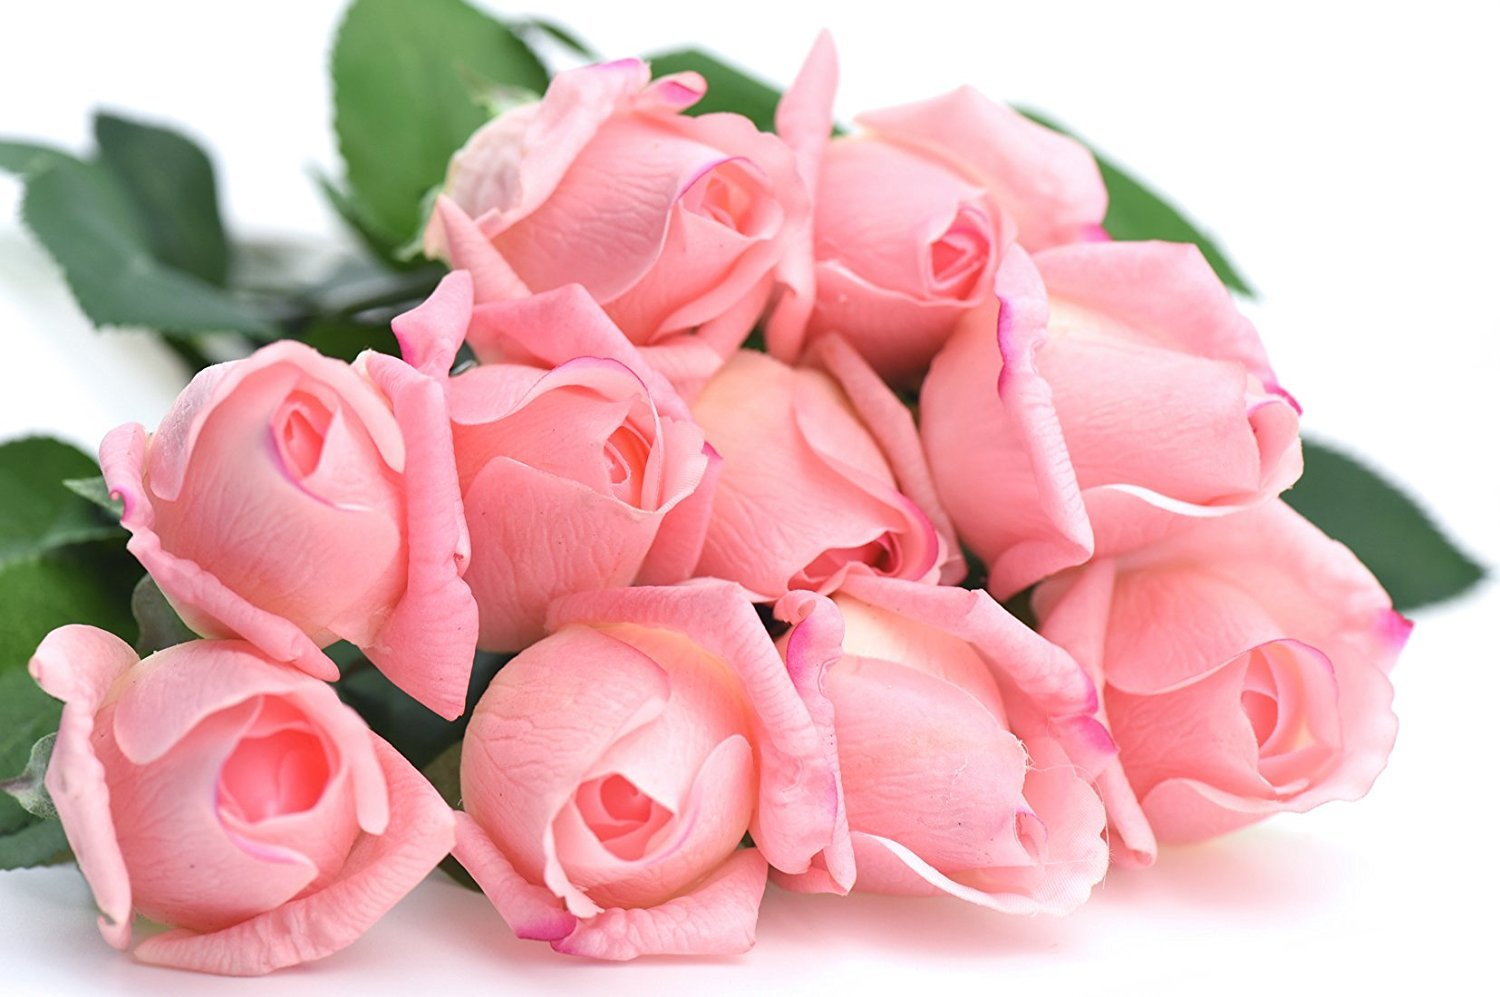 FiveSeasonStuff-10-Stems-of-Real-Touch-Silk-Roses-Petals-Feel-and-Look-like-Fresh-Roses-Artificial-Flower-Bouquet-for-Wedding-Bridal-Office-Party-Home-Decor-Dark-Pink